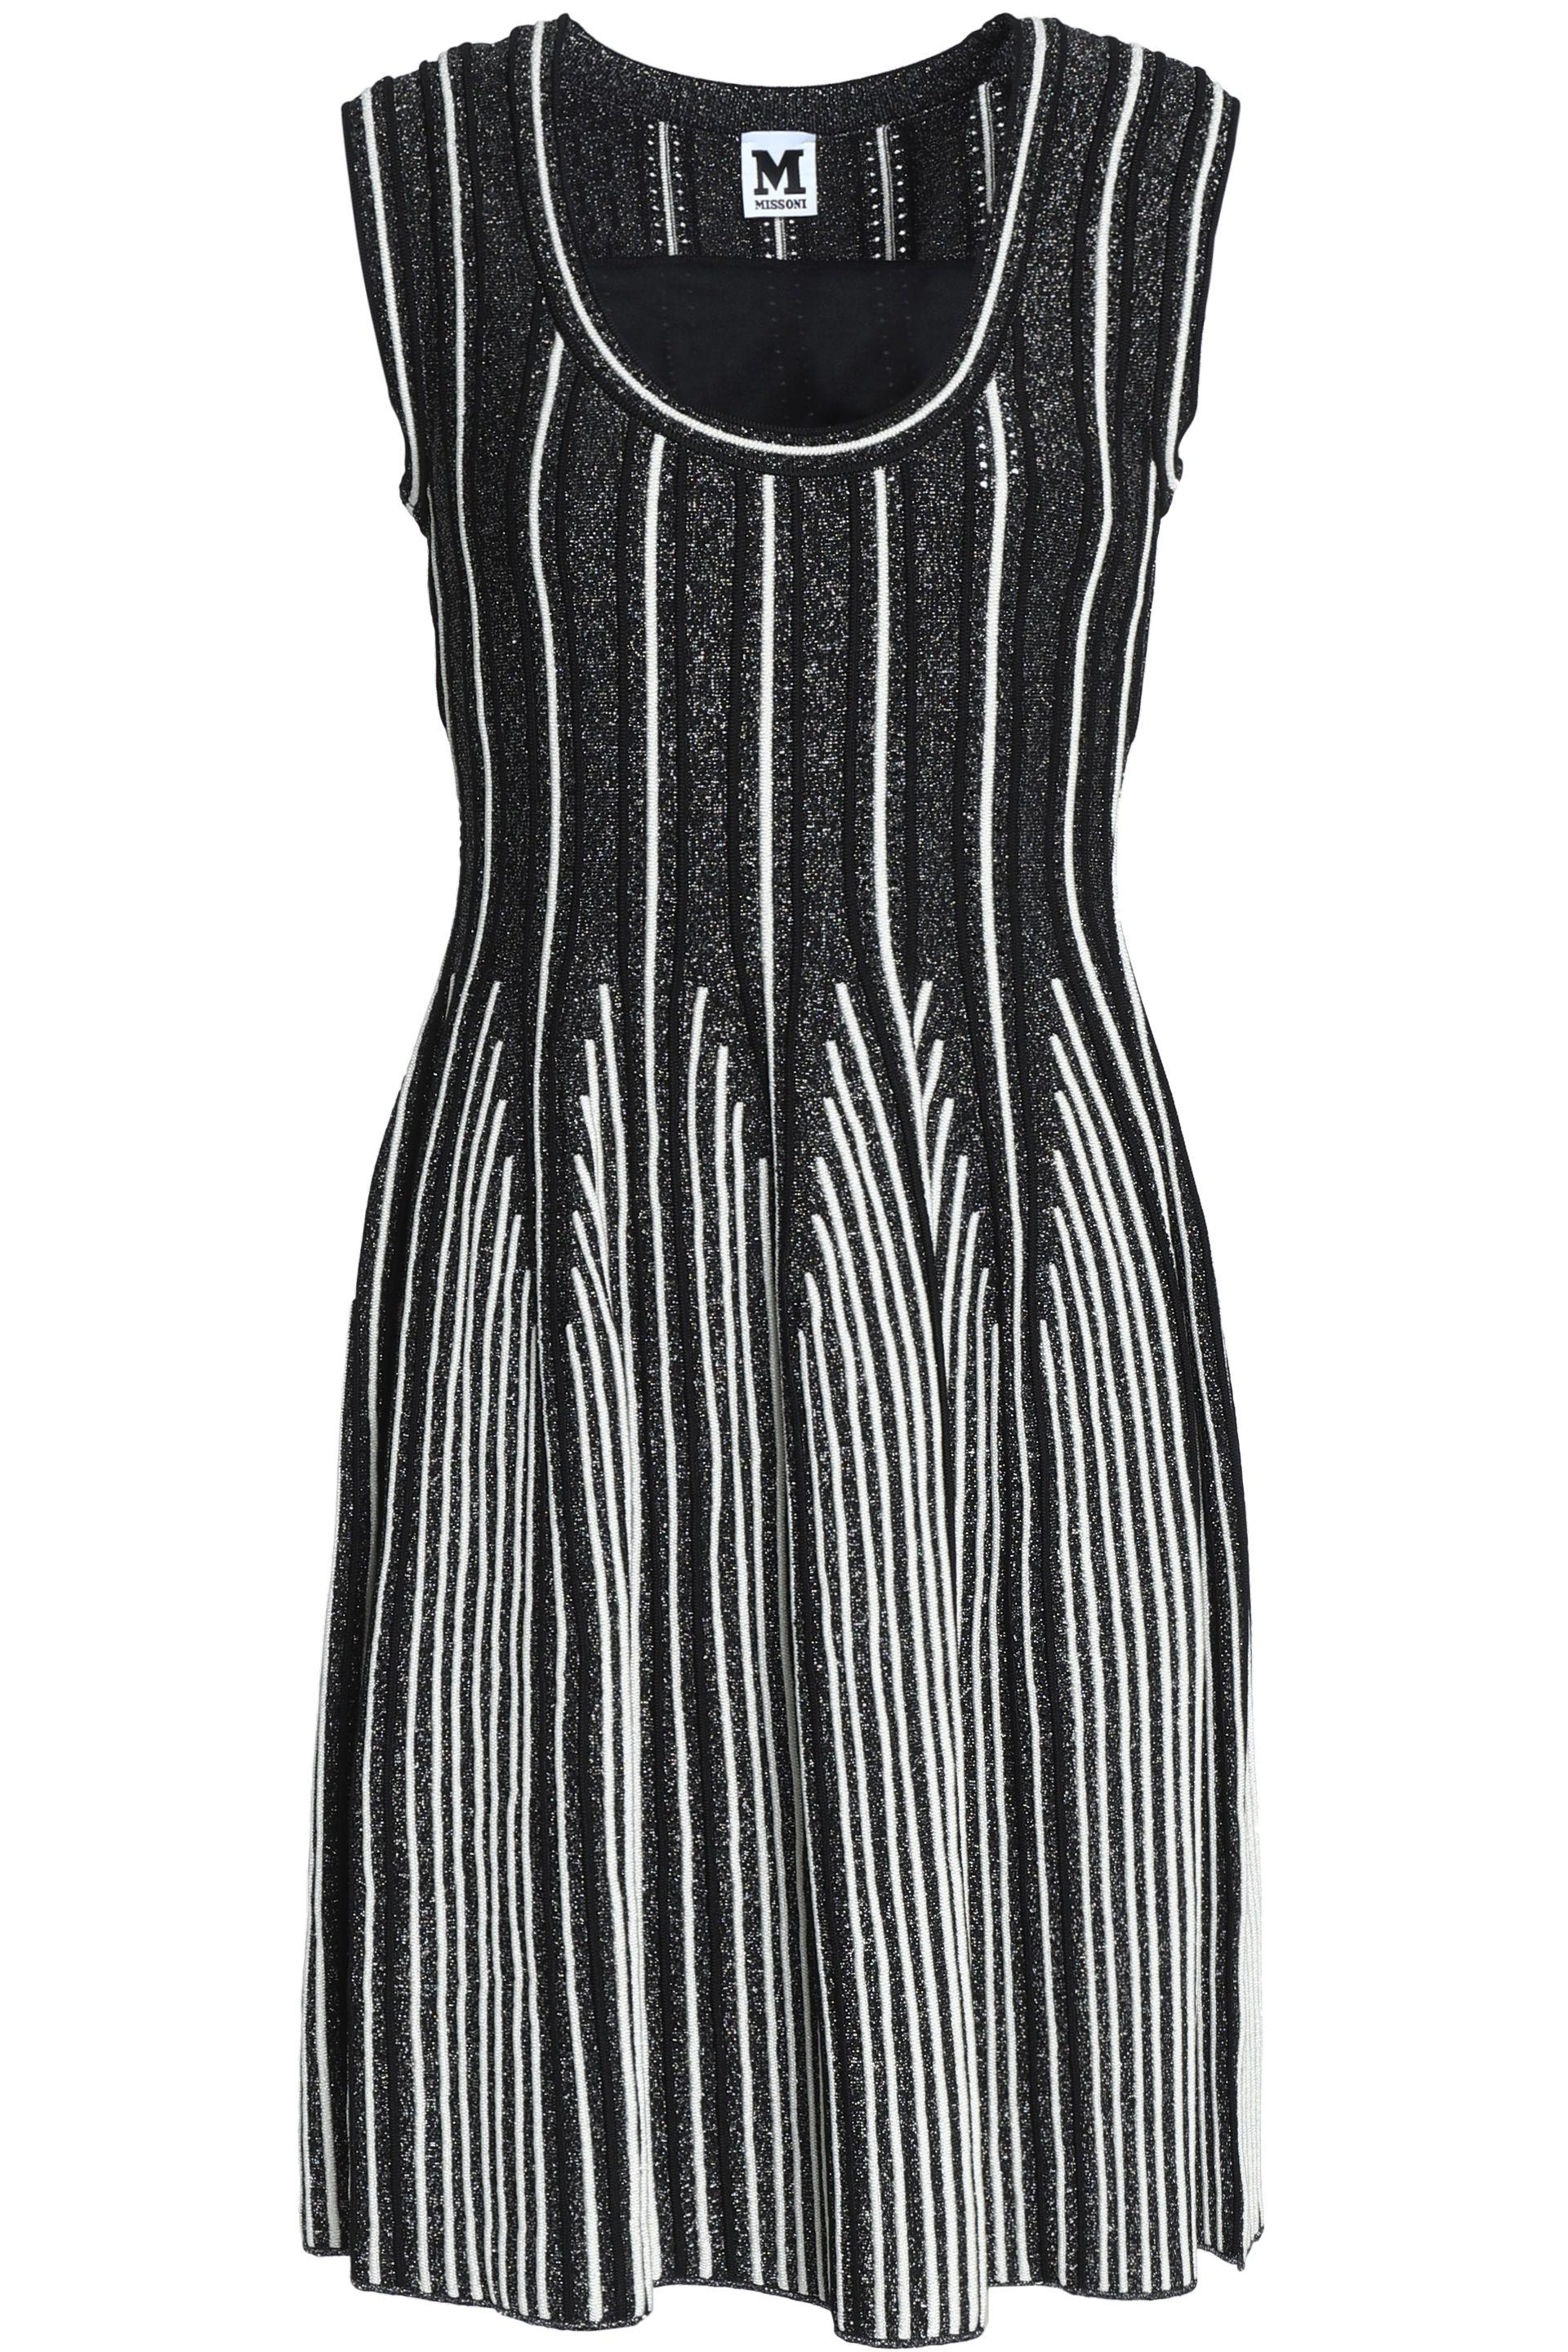 M Missoni Woman Flared Textured Stretch-knit Mini Dress Black Size 46 M Missoni wjnDN